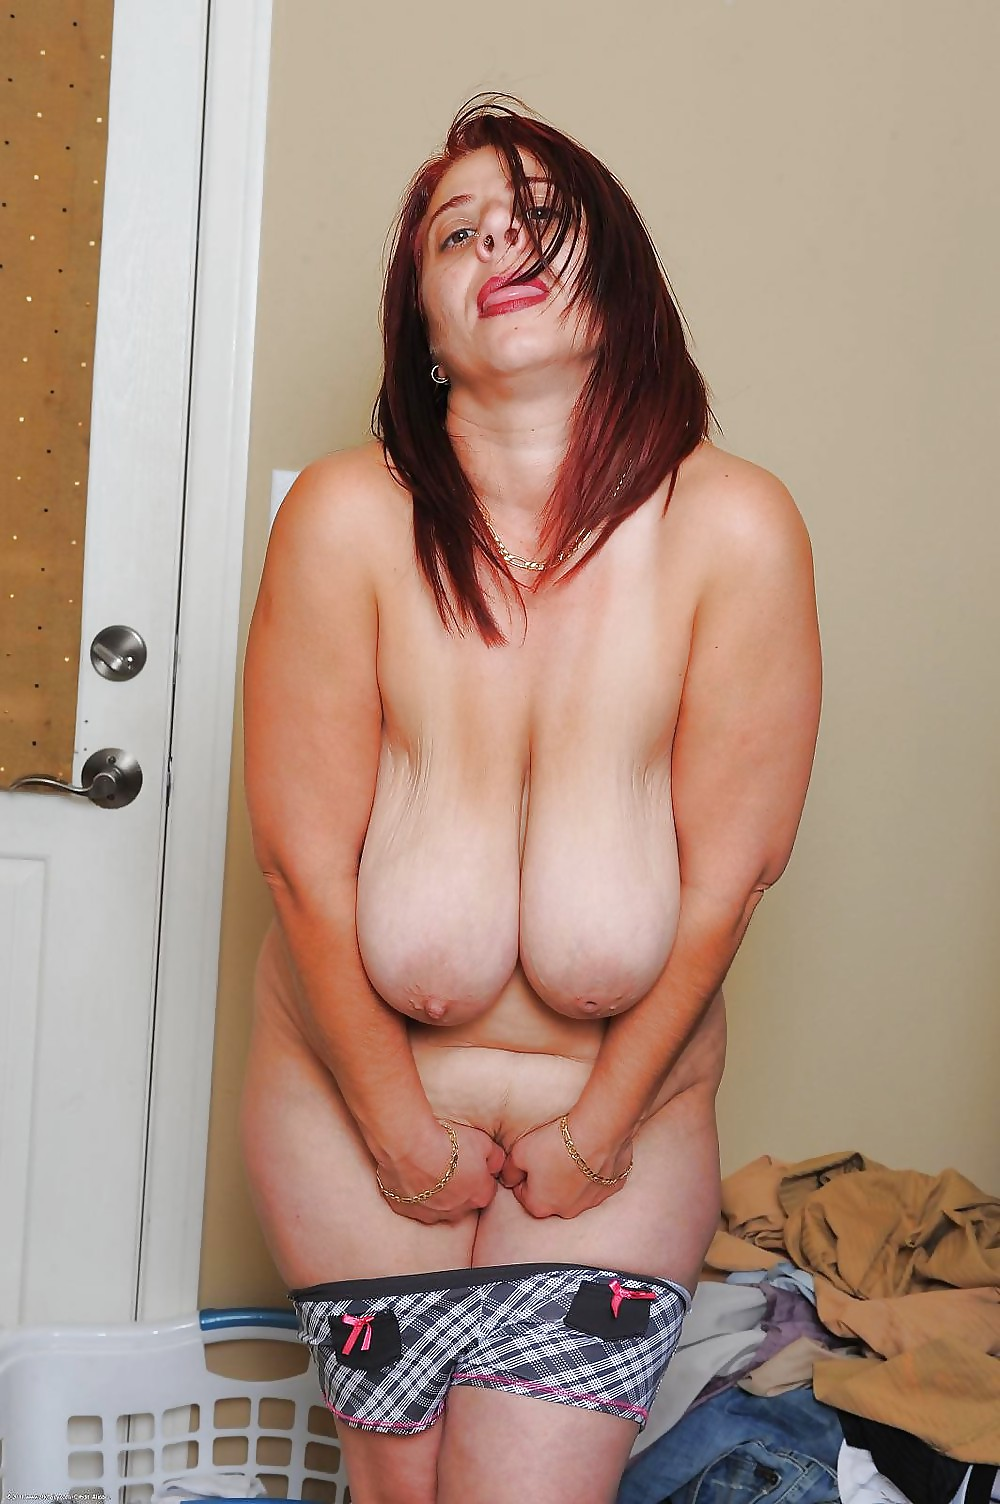 Free pictures of droopy tits — photo 10